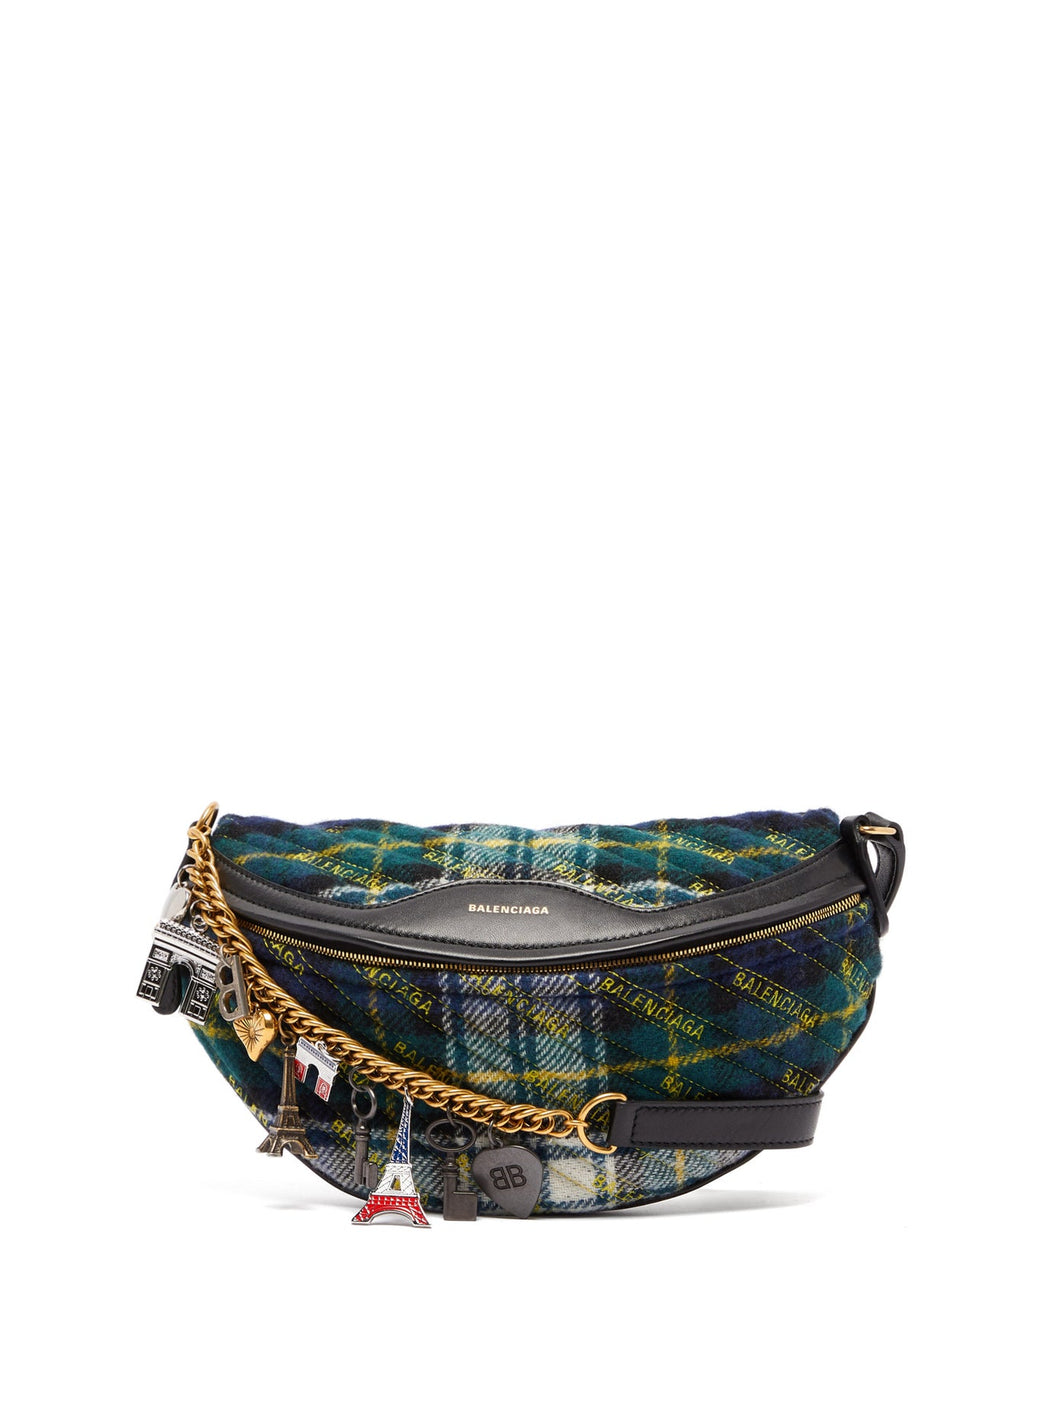 Souvenir XS belt bag